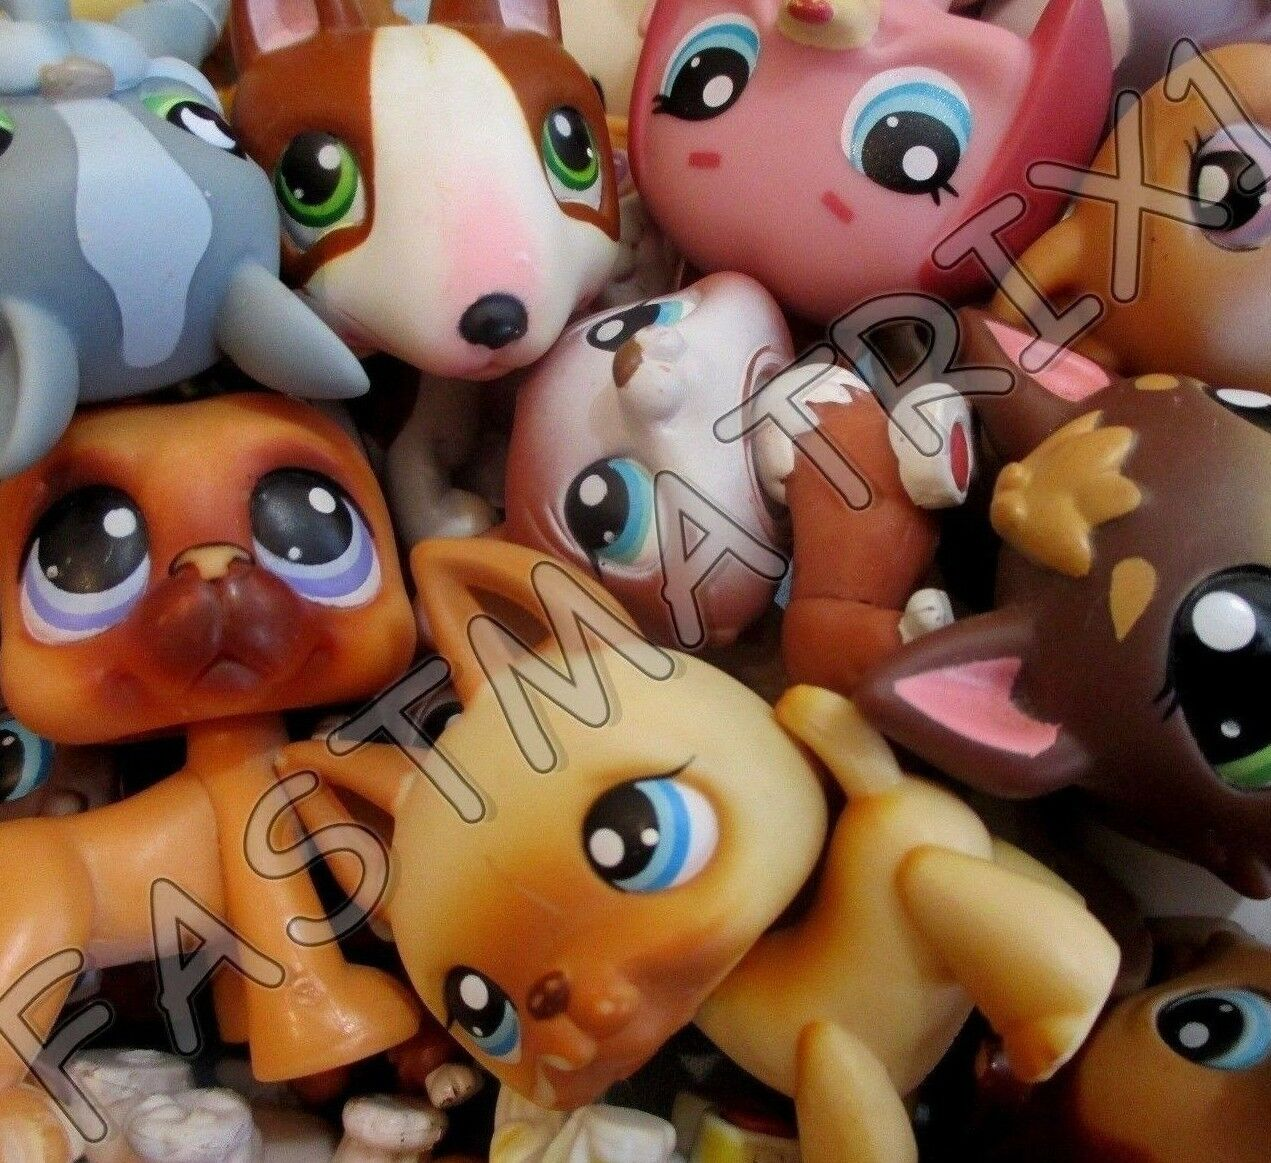 Littlest Pet Shop Lot of 3 Random Surprise Blemished Puppy Dogs Authentic Lps